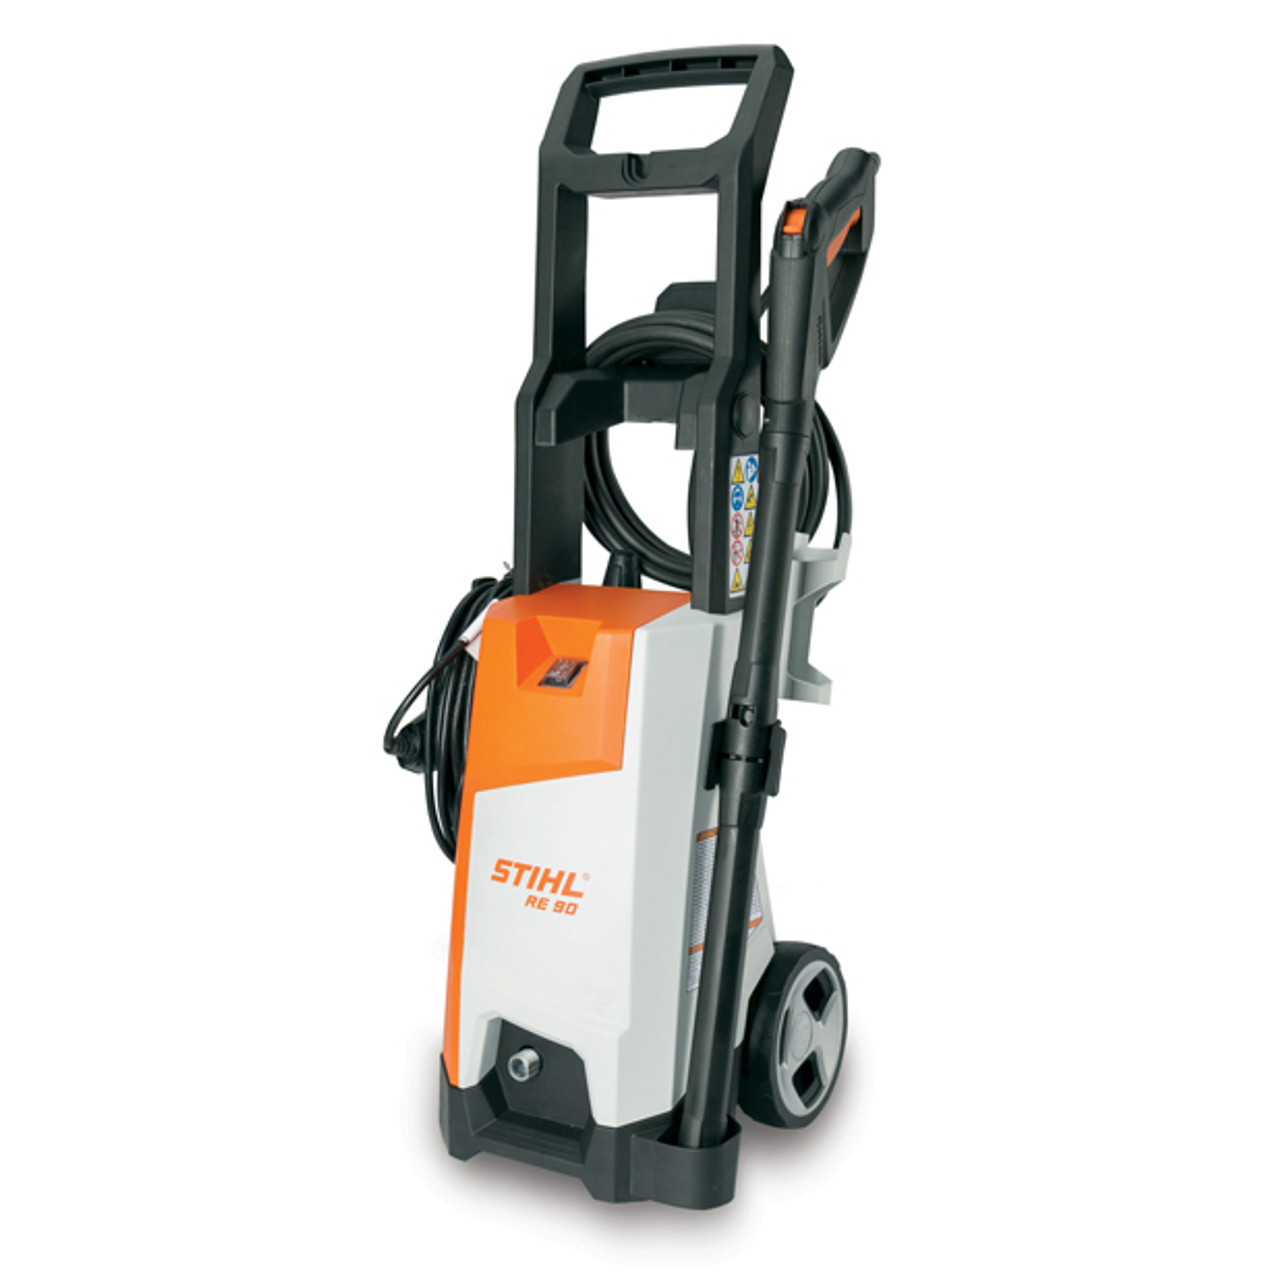 STIHL RE 90 1,800 PSI 1.2 GPM Electric Pressure Washer Image